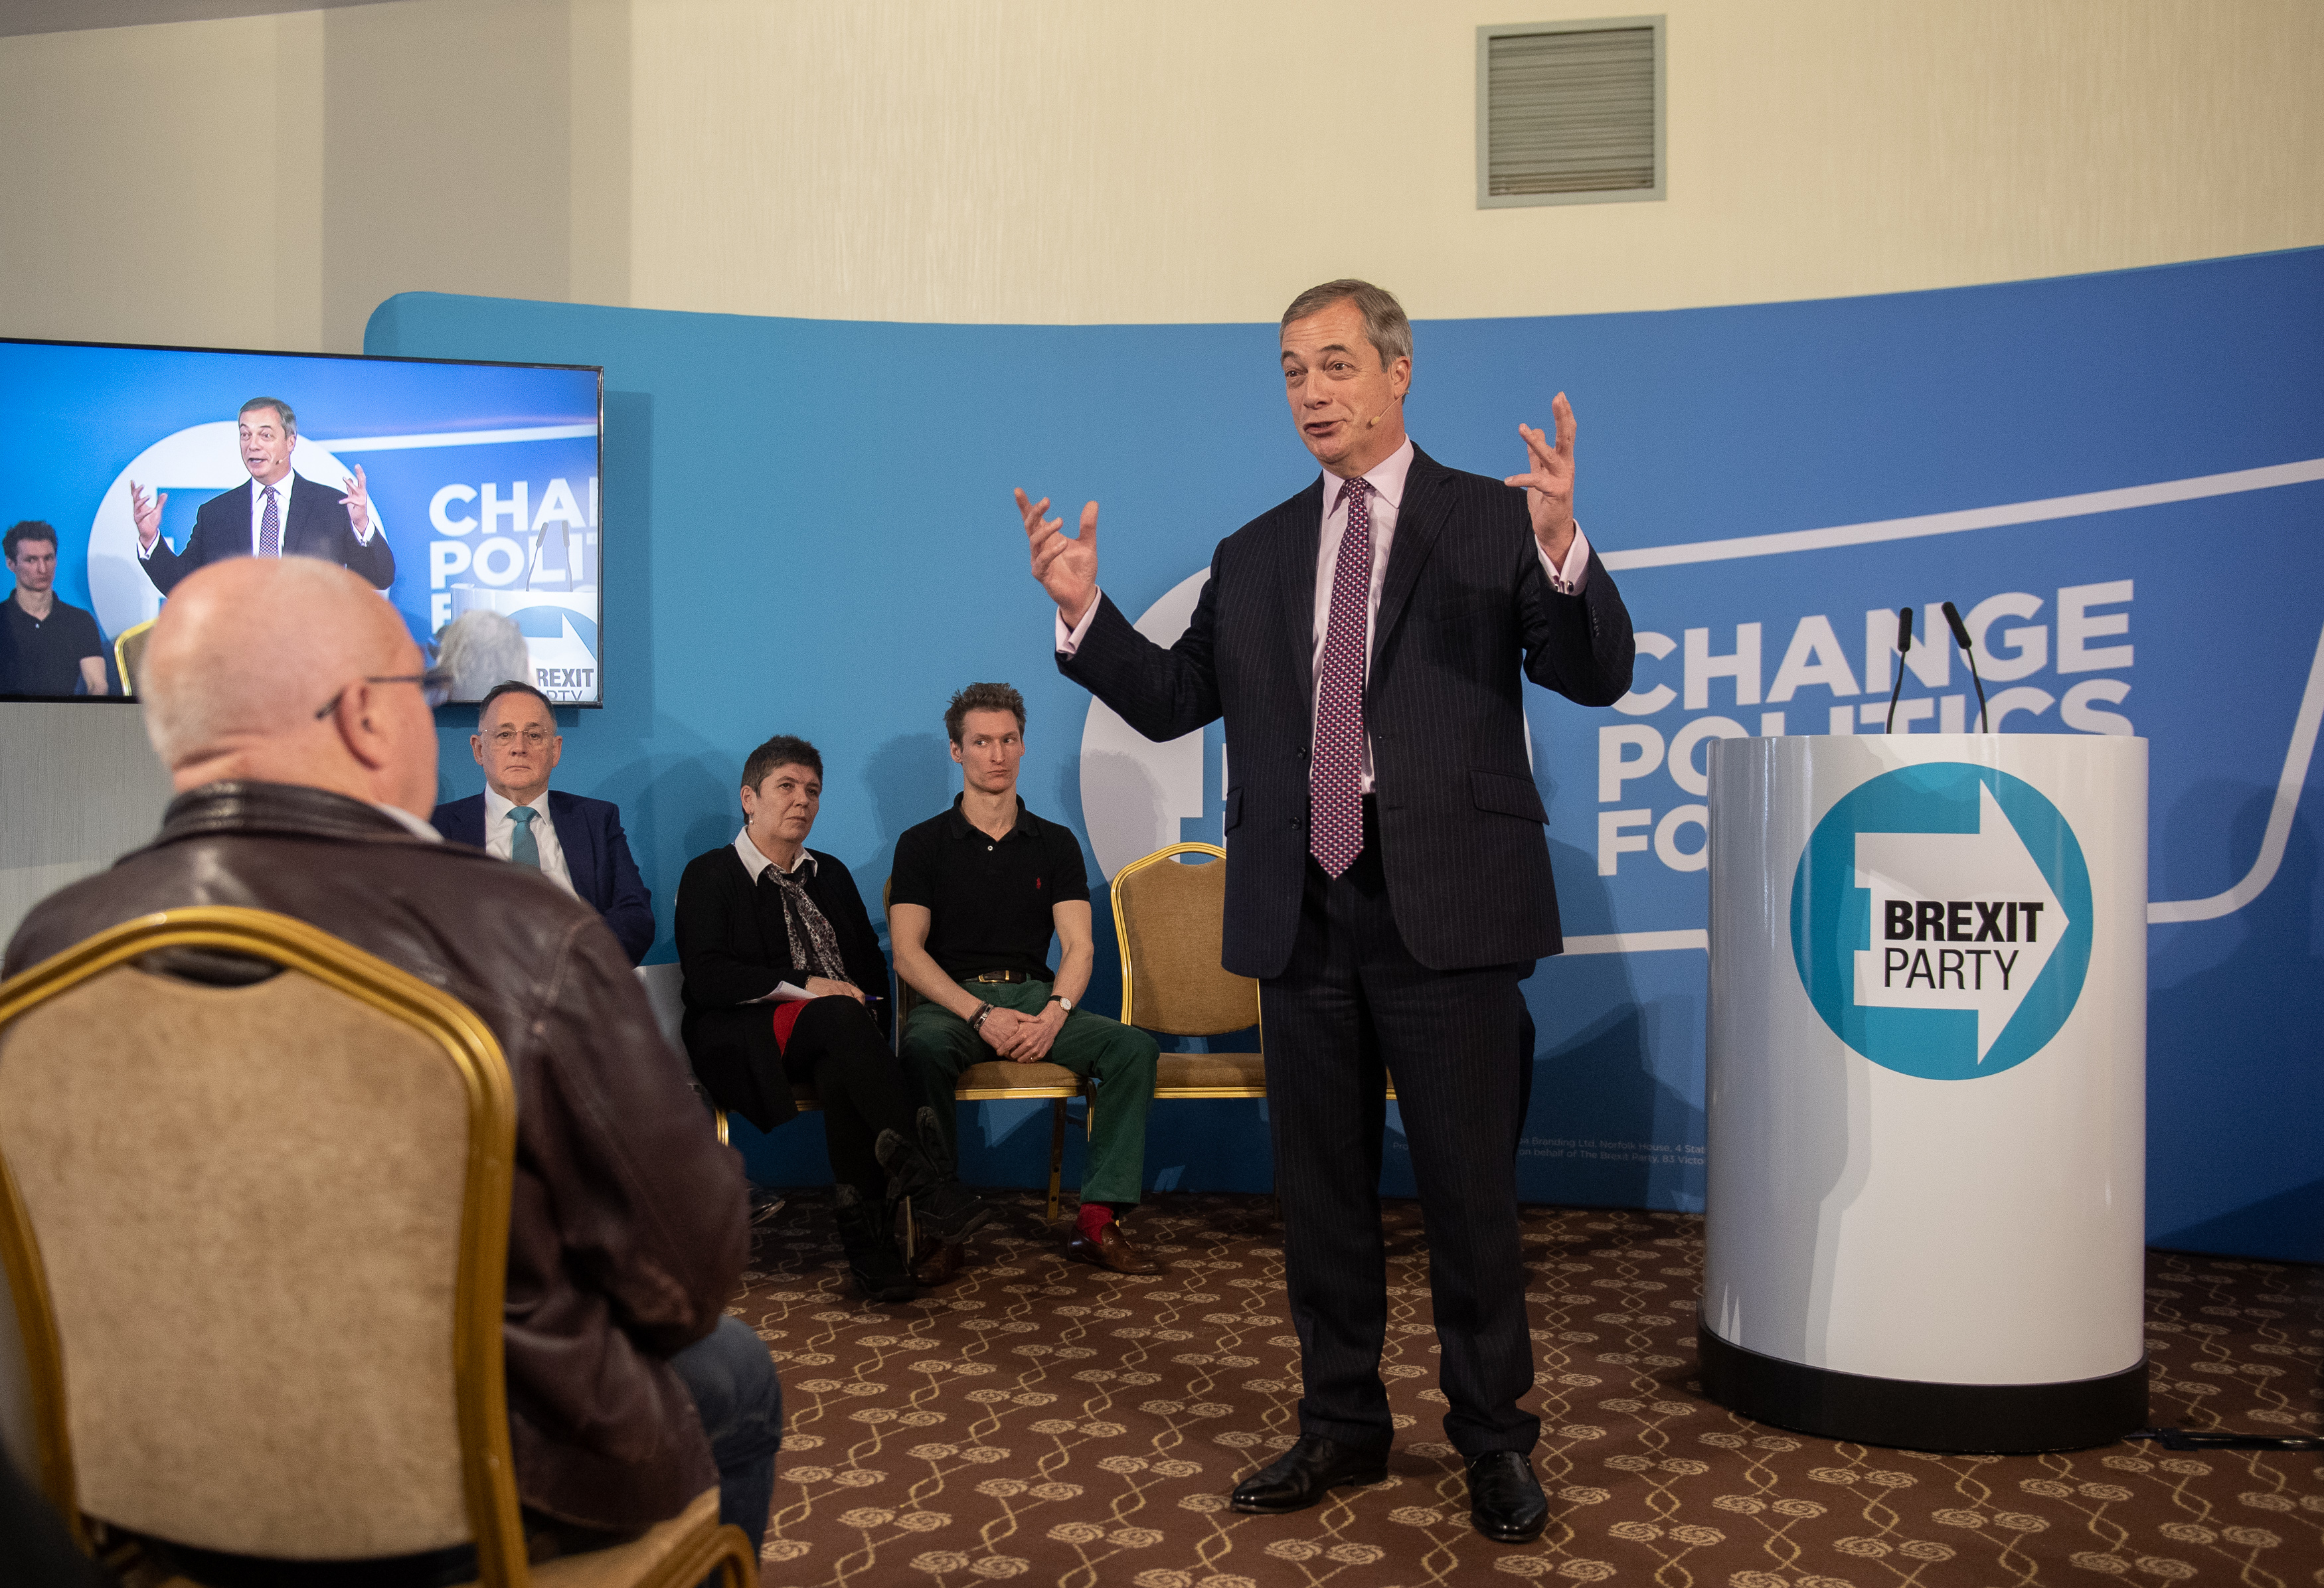 Brexit Party leader Nigel Farage during a party rally at the Great Northern Hotel, in Peterborough, Cambridgeshire, while on the campaign trail ahead of the General Election. PA Photo. Picture date: Tuesday November 19, 2019. See PA story POLITICS Election. Photo credit should read: Joe Giddens/PA Wire